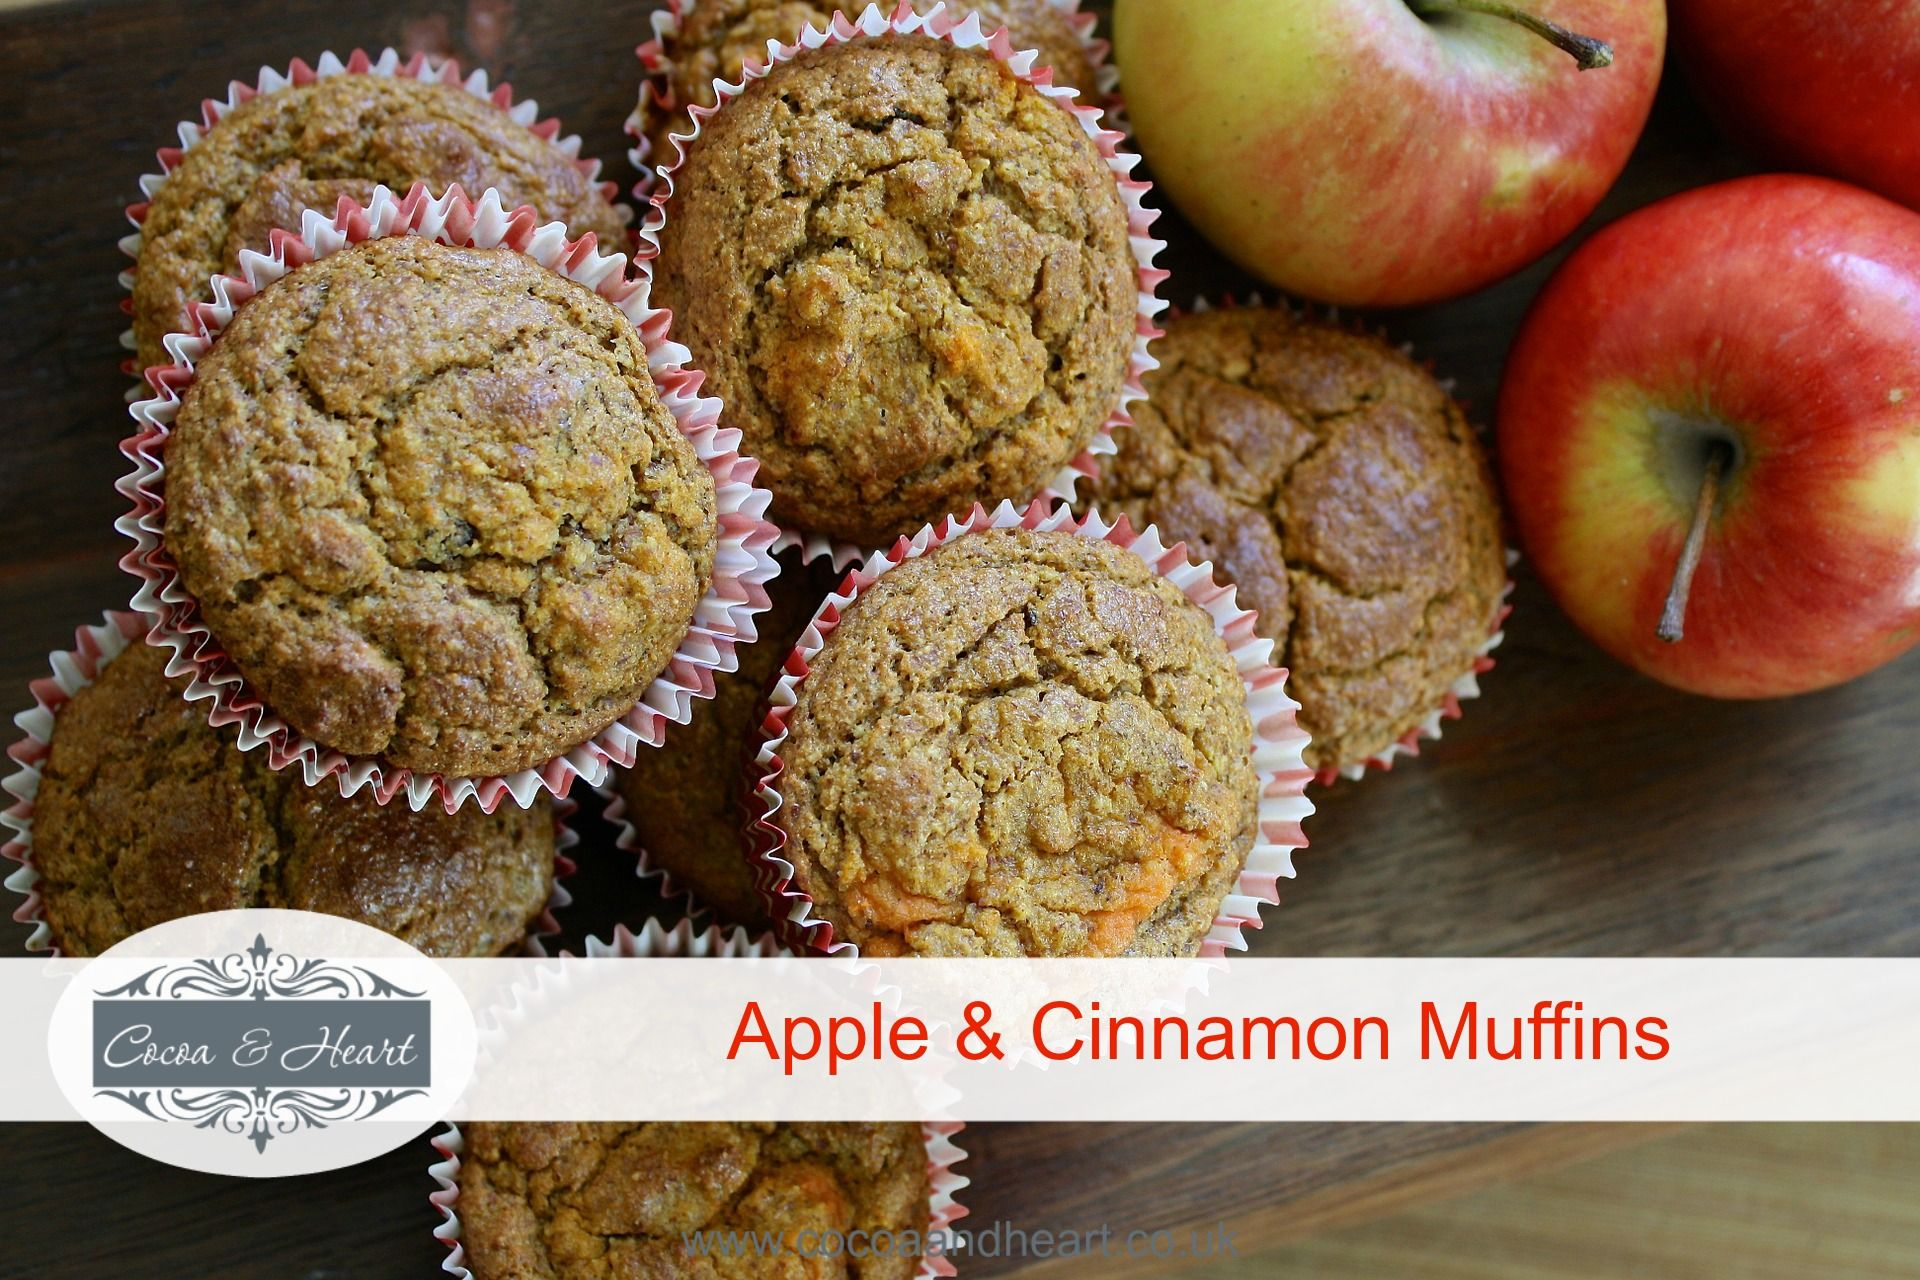 http://www.cocoaandheart.co.uk/blog/read_160204/apple-cinnamon-muffins-recipe.html#.WAdt8yTcAXg